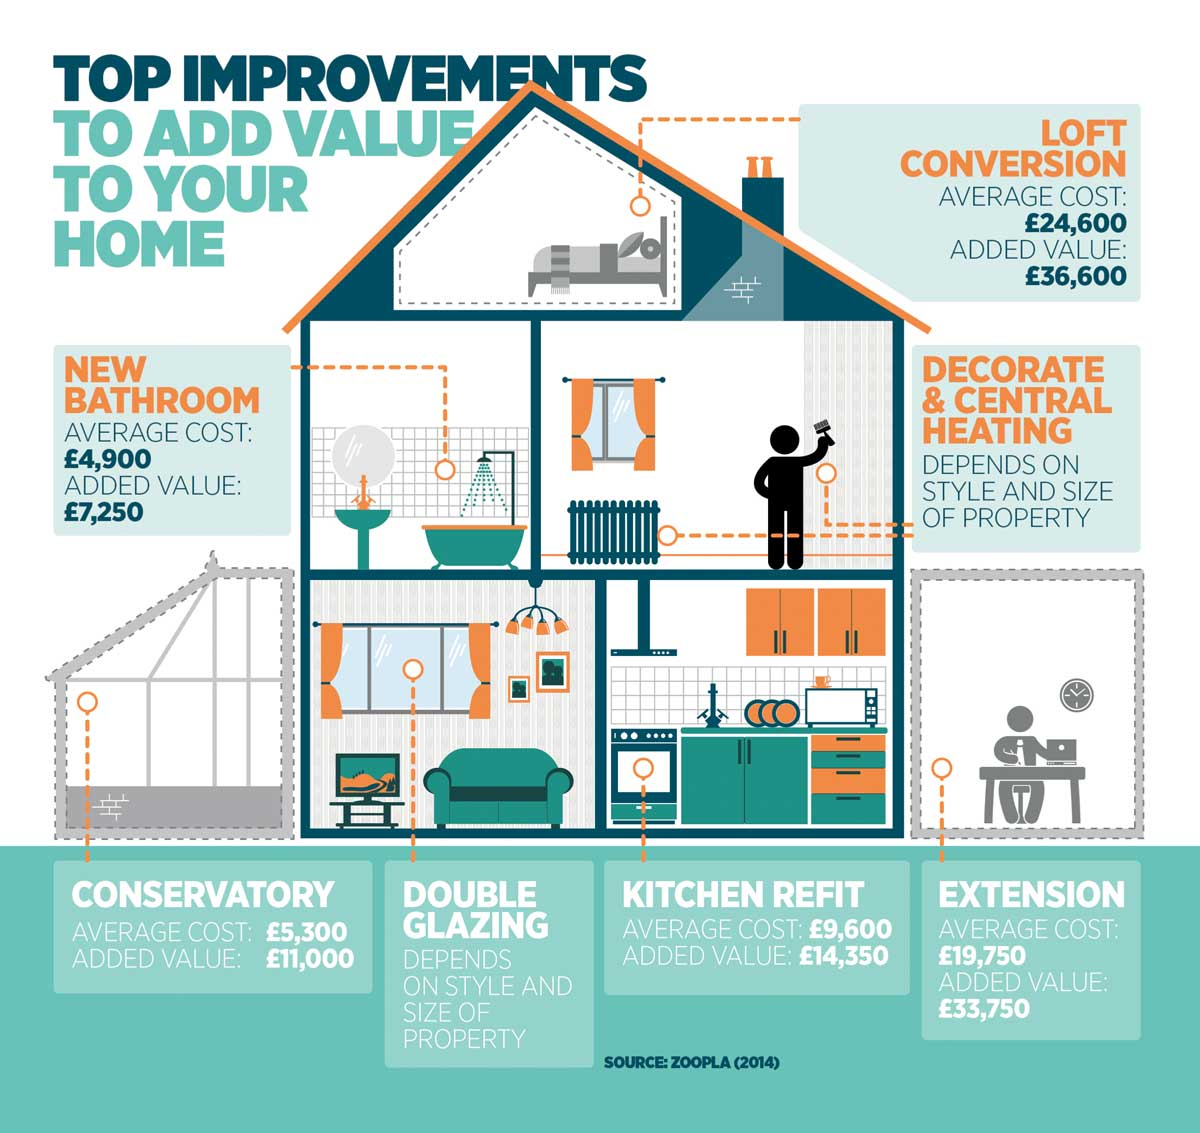 Guide to the improvements that add value to your home